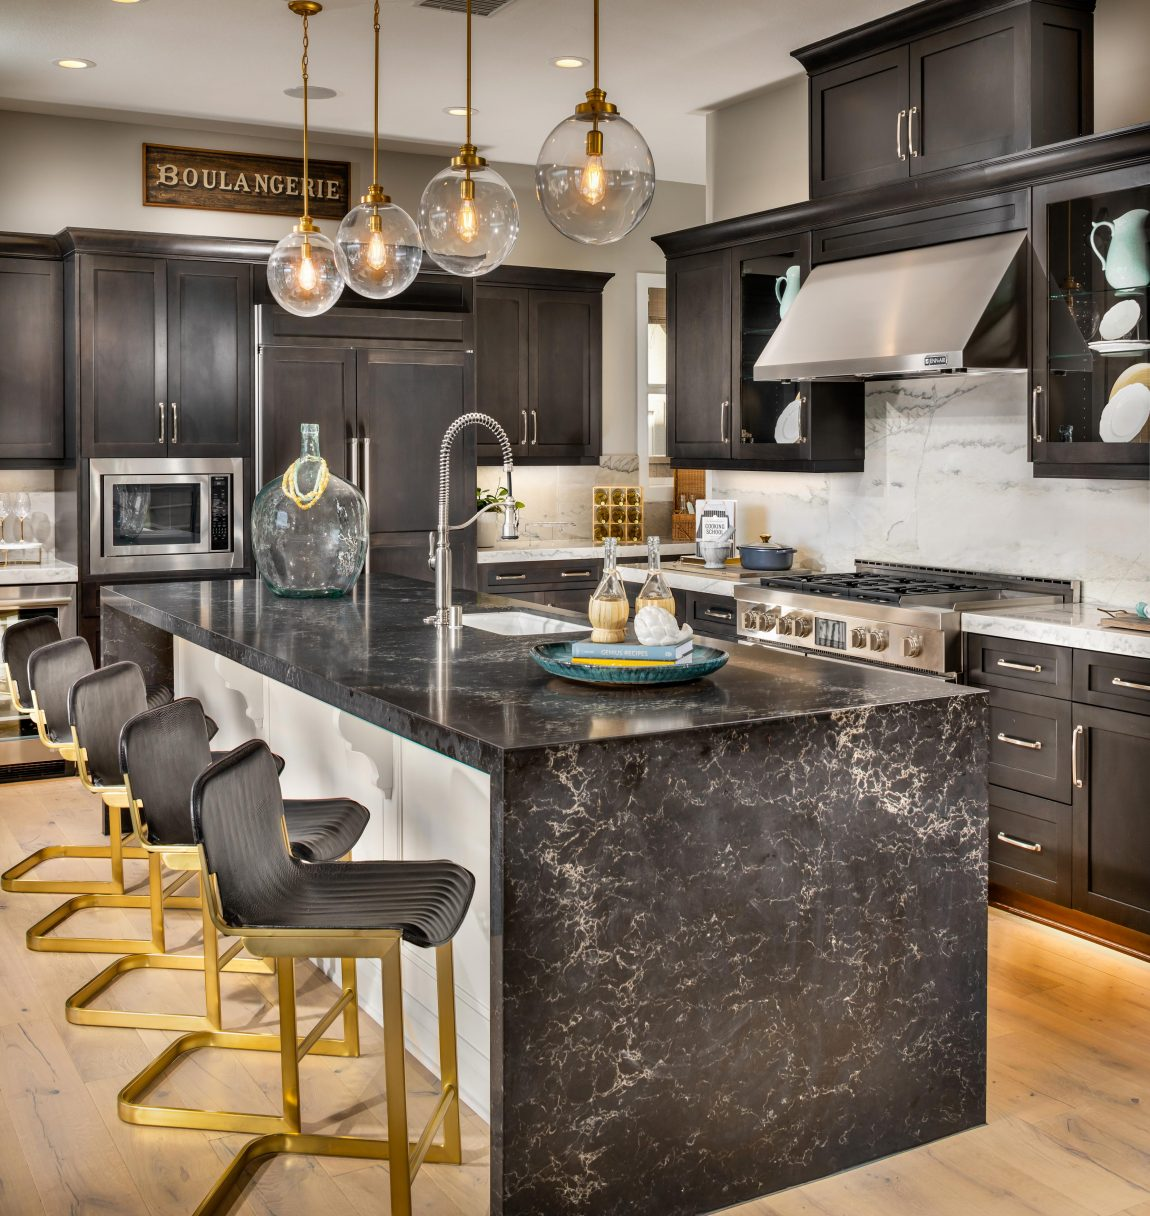 Kitchen with gold accents.